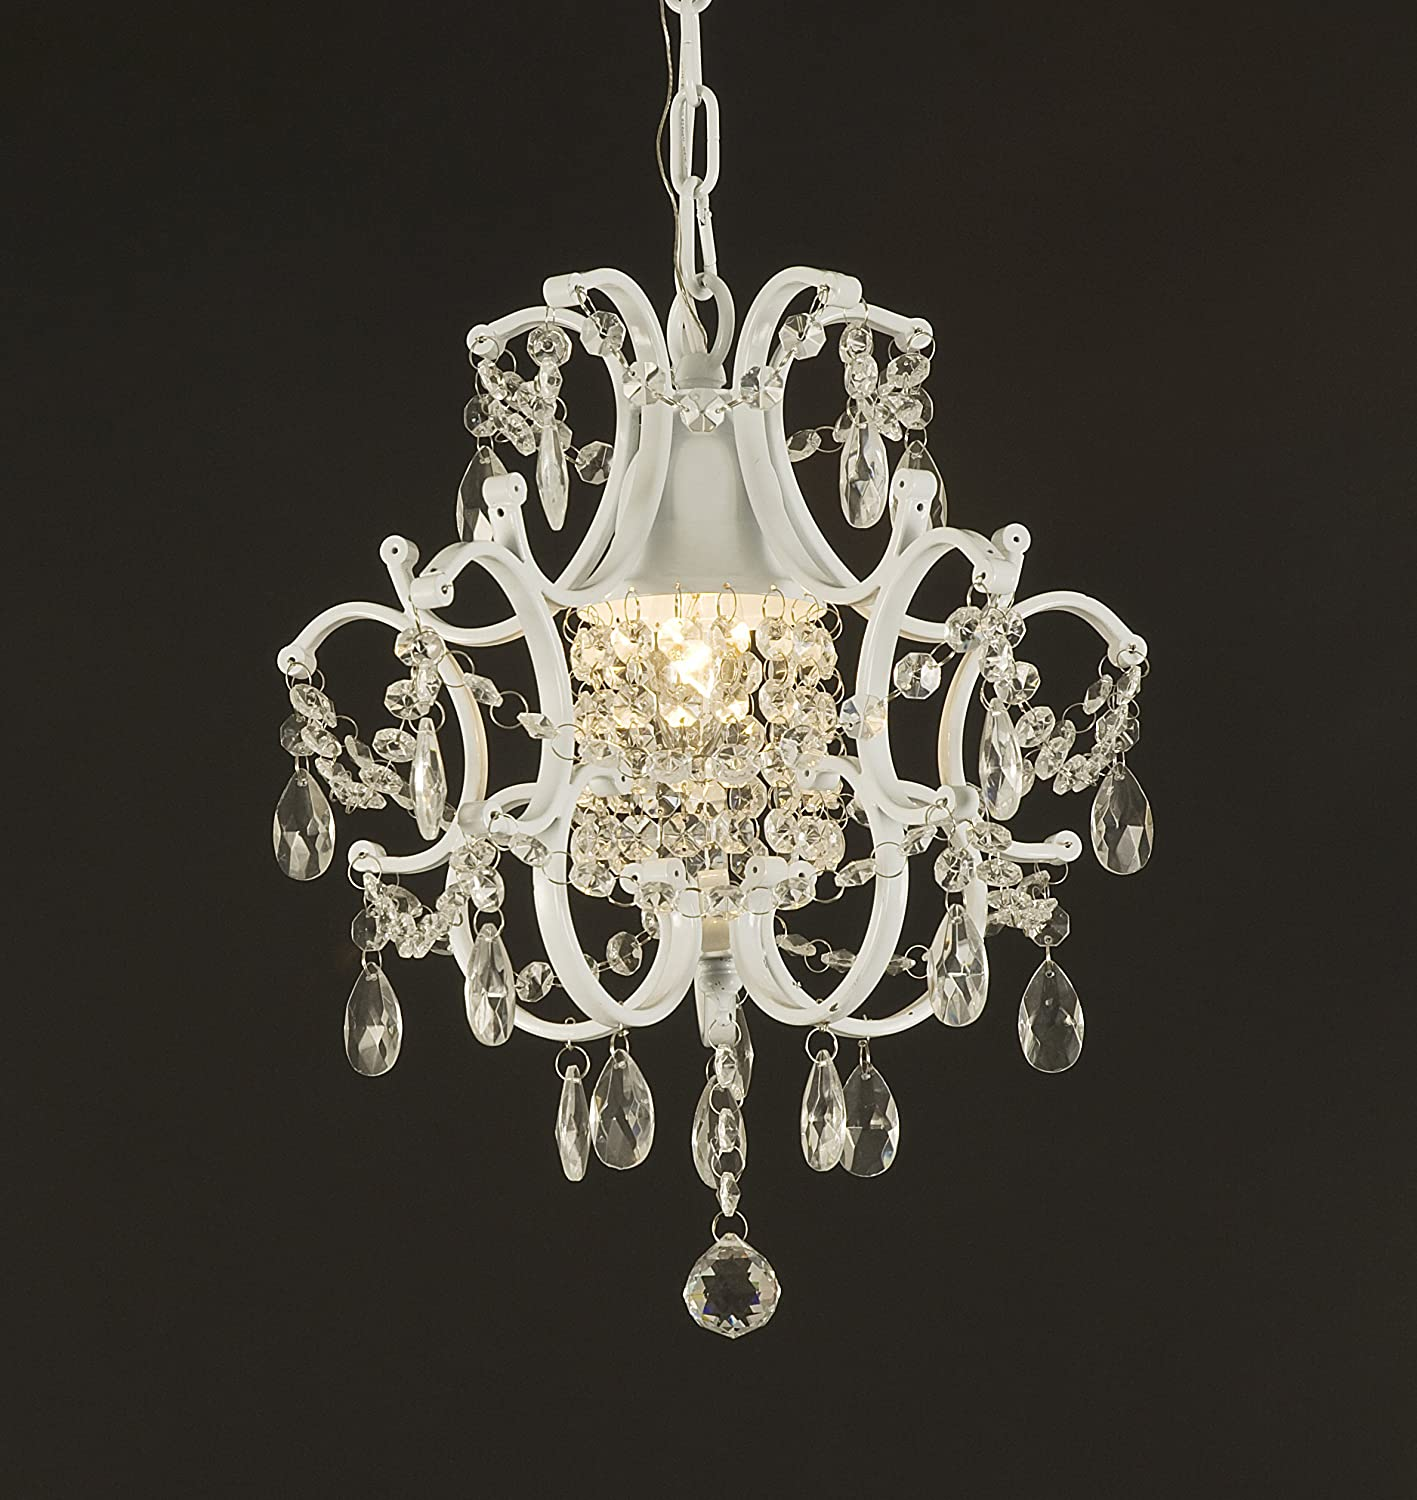 Country French Light Fixtures - Best Home Decoration World Class